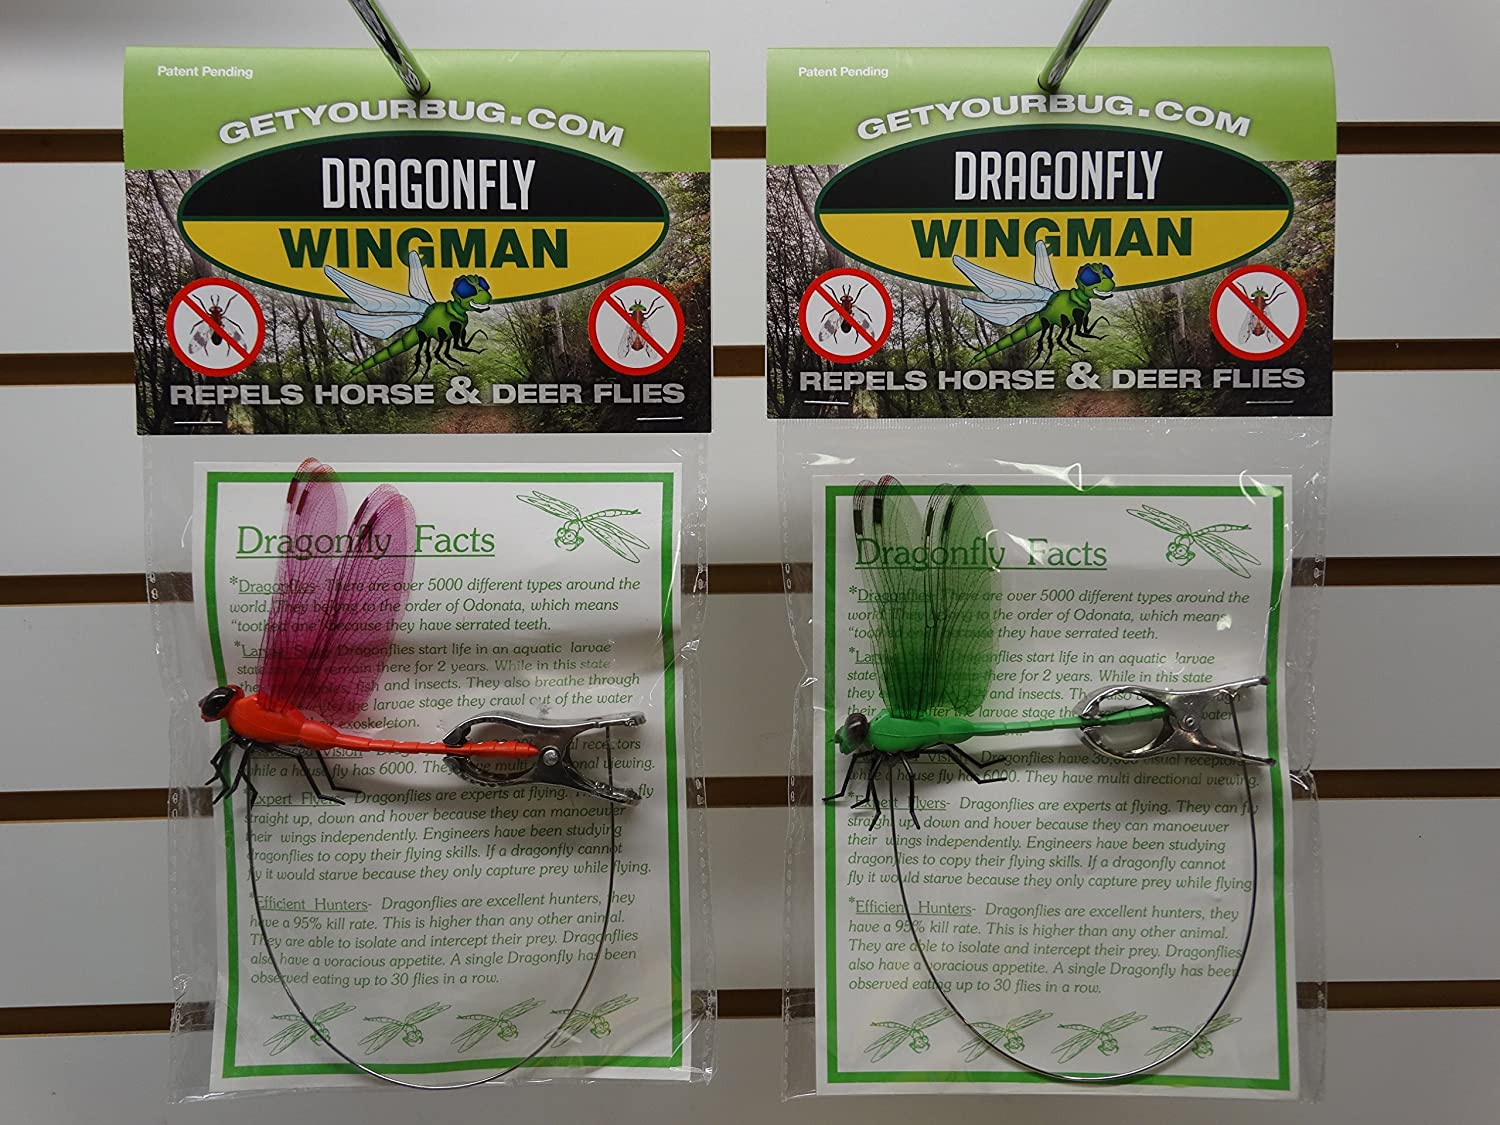 DRAGONFLY WINGMAN DEER AND HORSE FLY REPELLENT